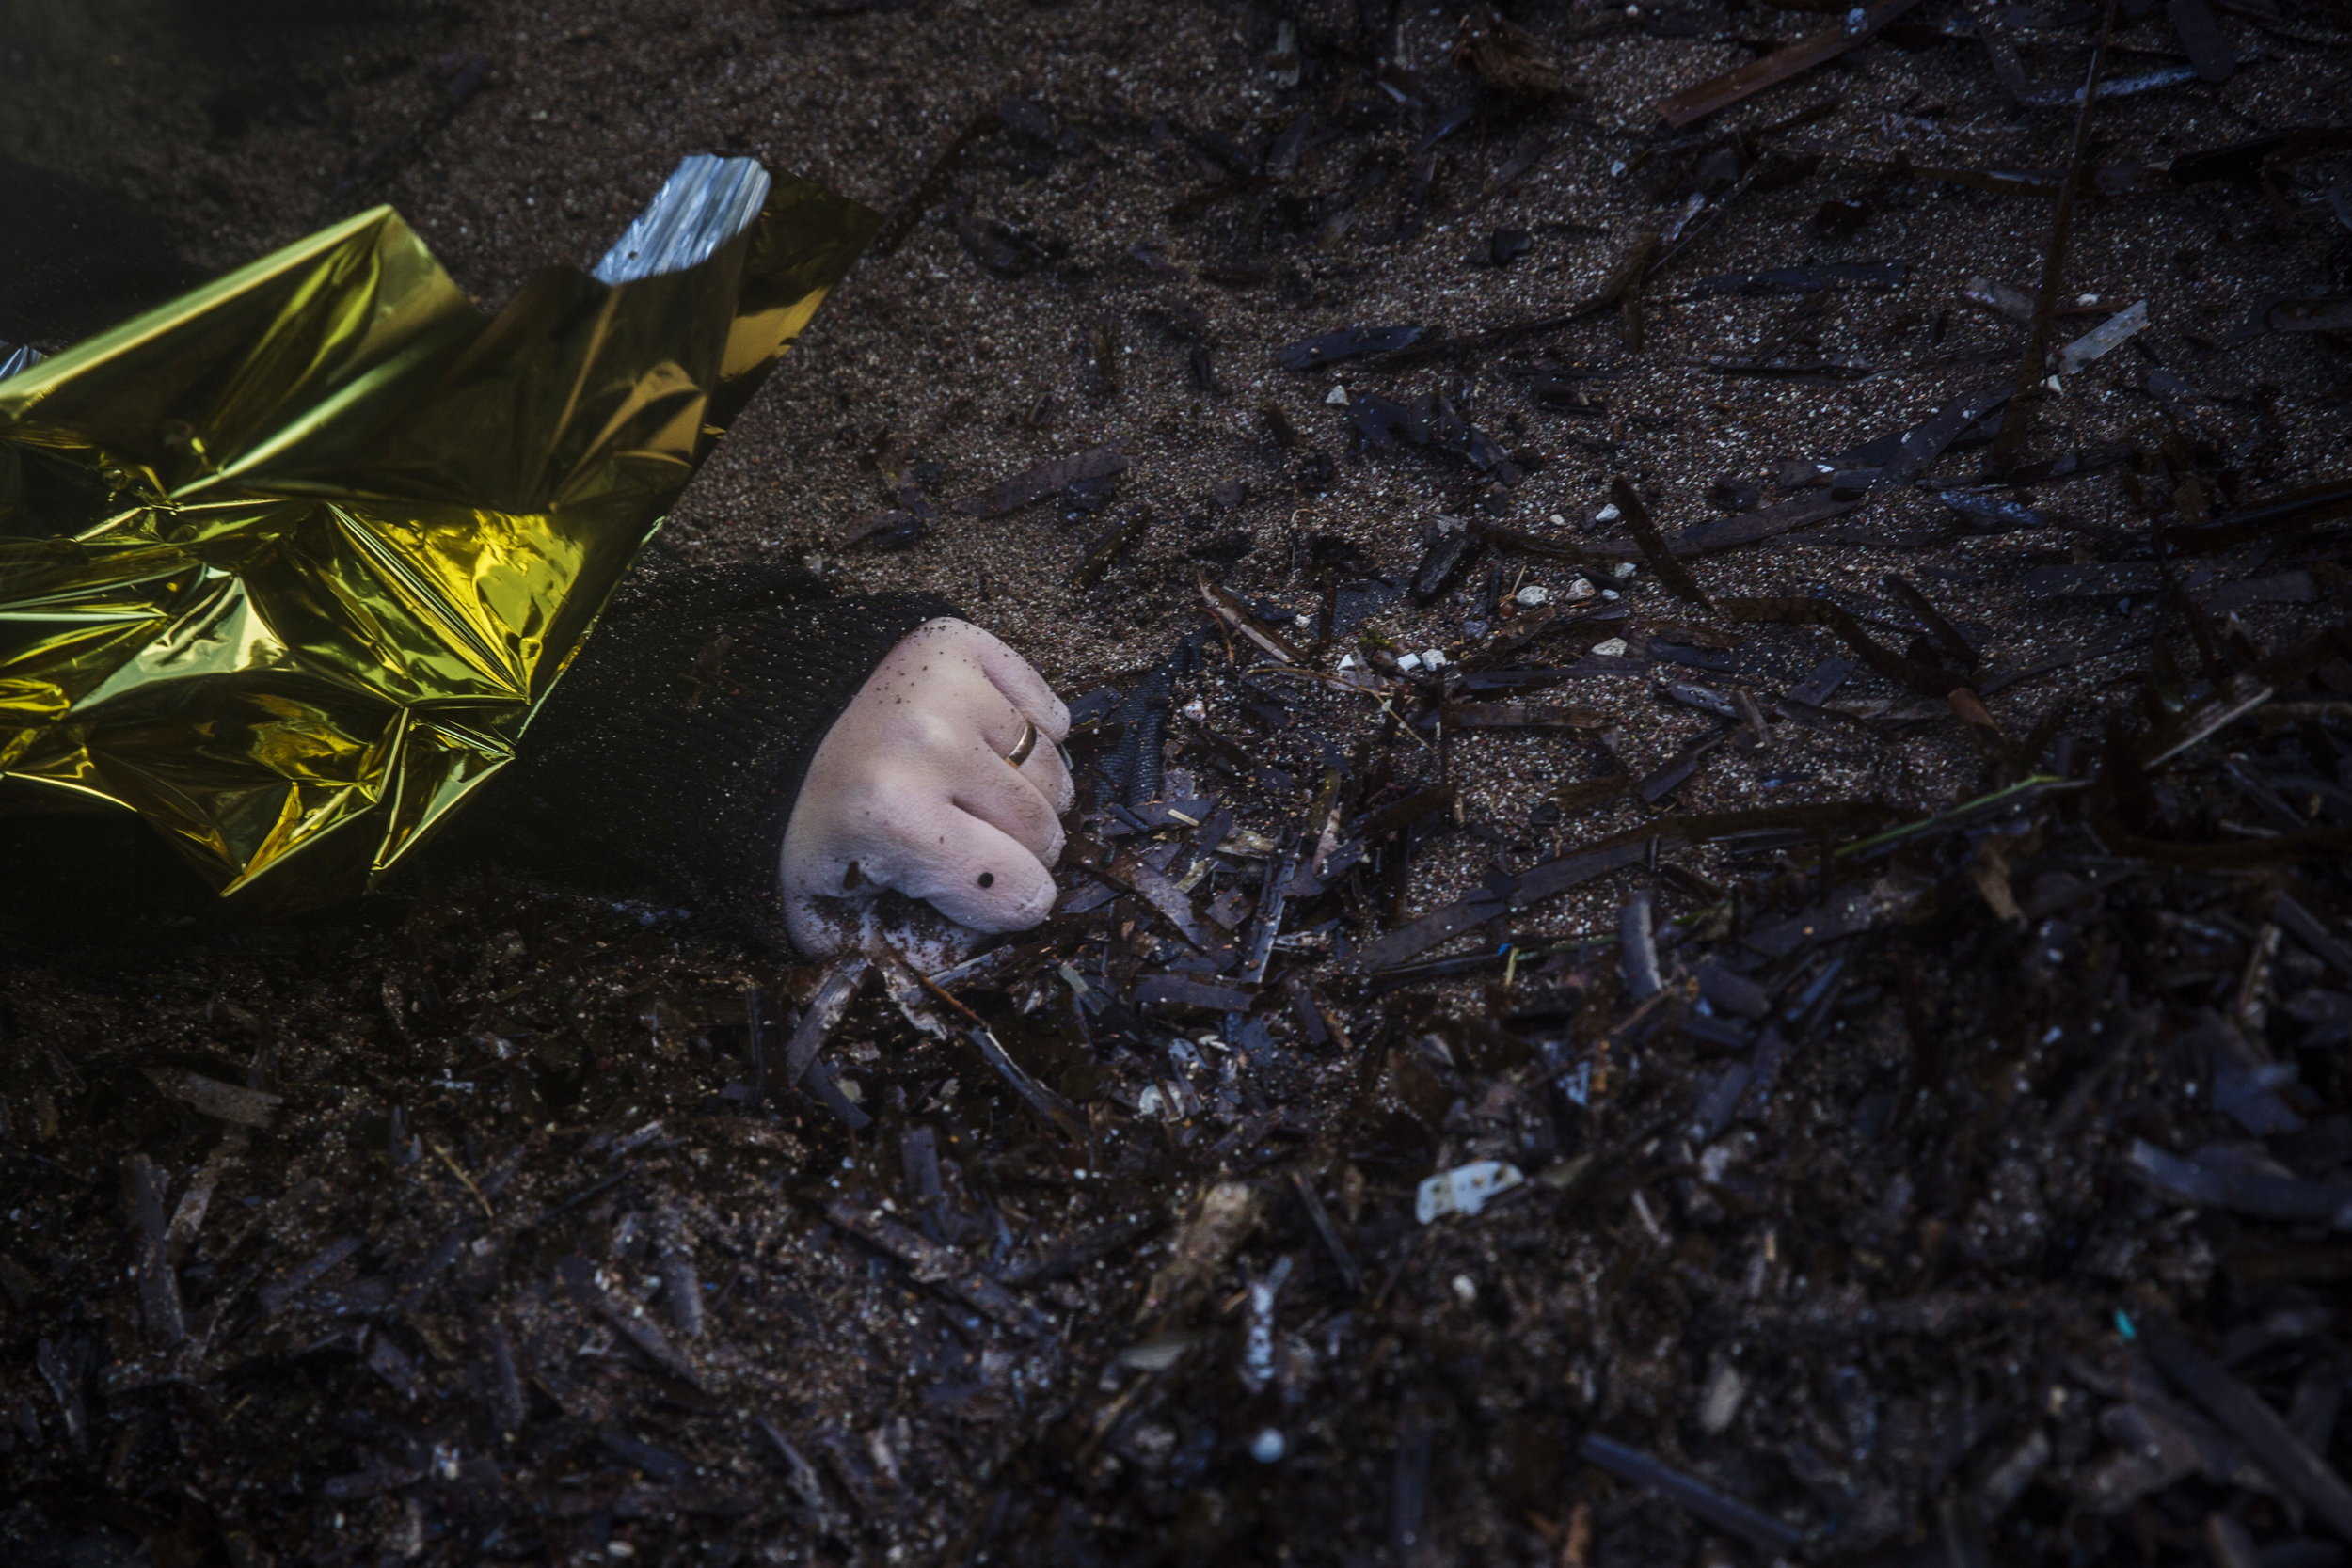 This Sunday, Nov. 1, 2015 photo shows the hand of an unidentified woman wearing a wedding ring on a beach after her body washed up on the shoreline at the village of Skala, on the Greek island of Lesbos. (AP Photo/Santi Palacios)